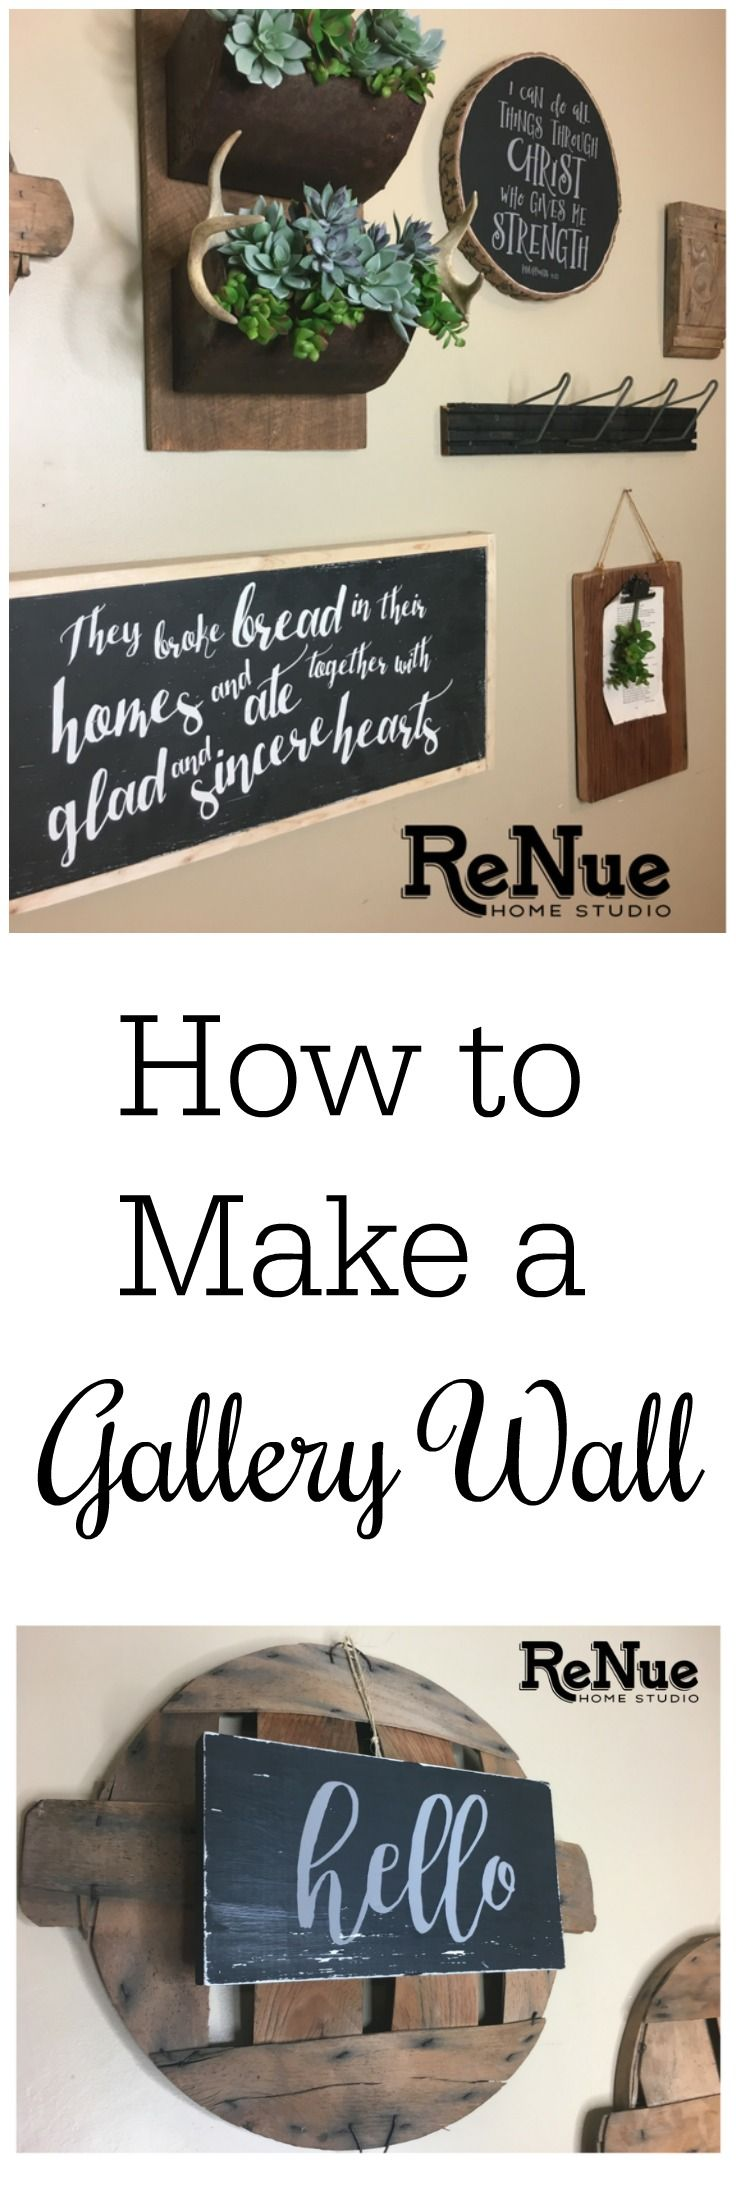 How to make a Gallery Wall - Tips and Tricks  Rustic Decor DIY Gallery Walls Antlers Succulents Signs Chalk Couture Silk Screen Stencil Handmade Barn Wood Fruit Lids Crate Grain Elevator Rusty Metal Galvanized Amish Hat Rack I Can Do All Things They Broke Bread In Their Homes Architectural Moulding